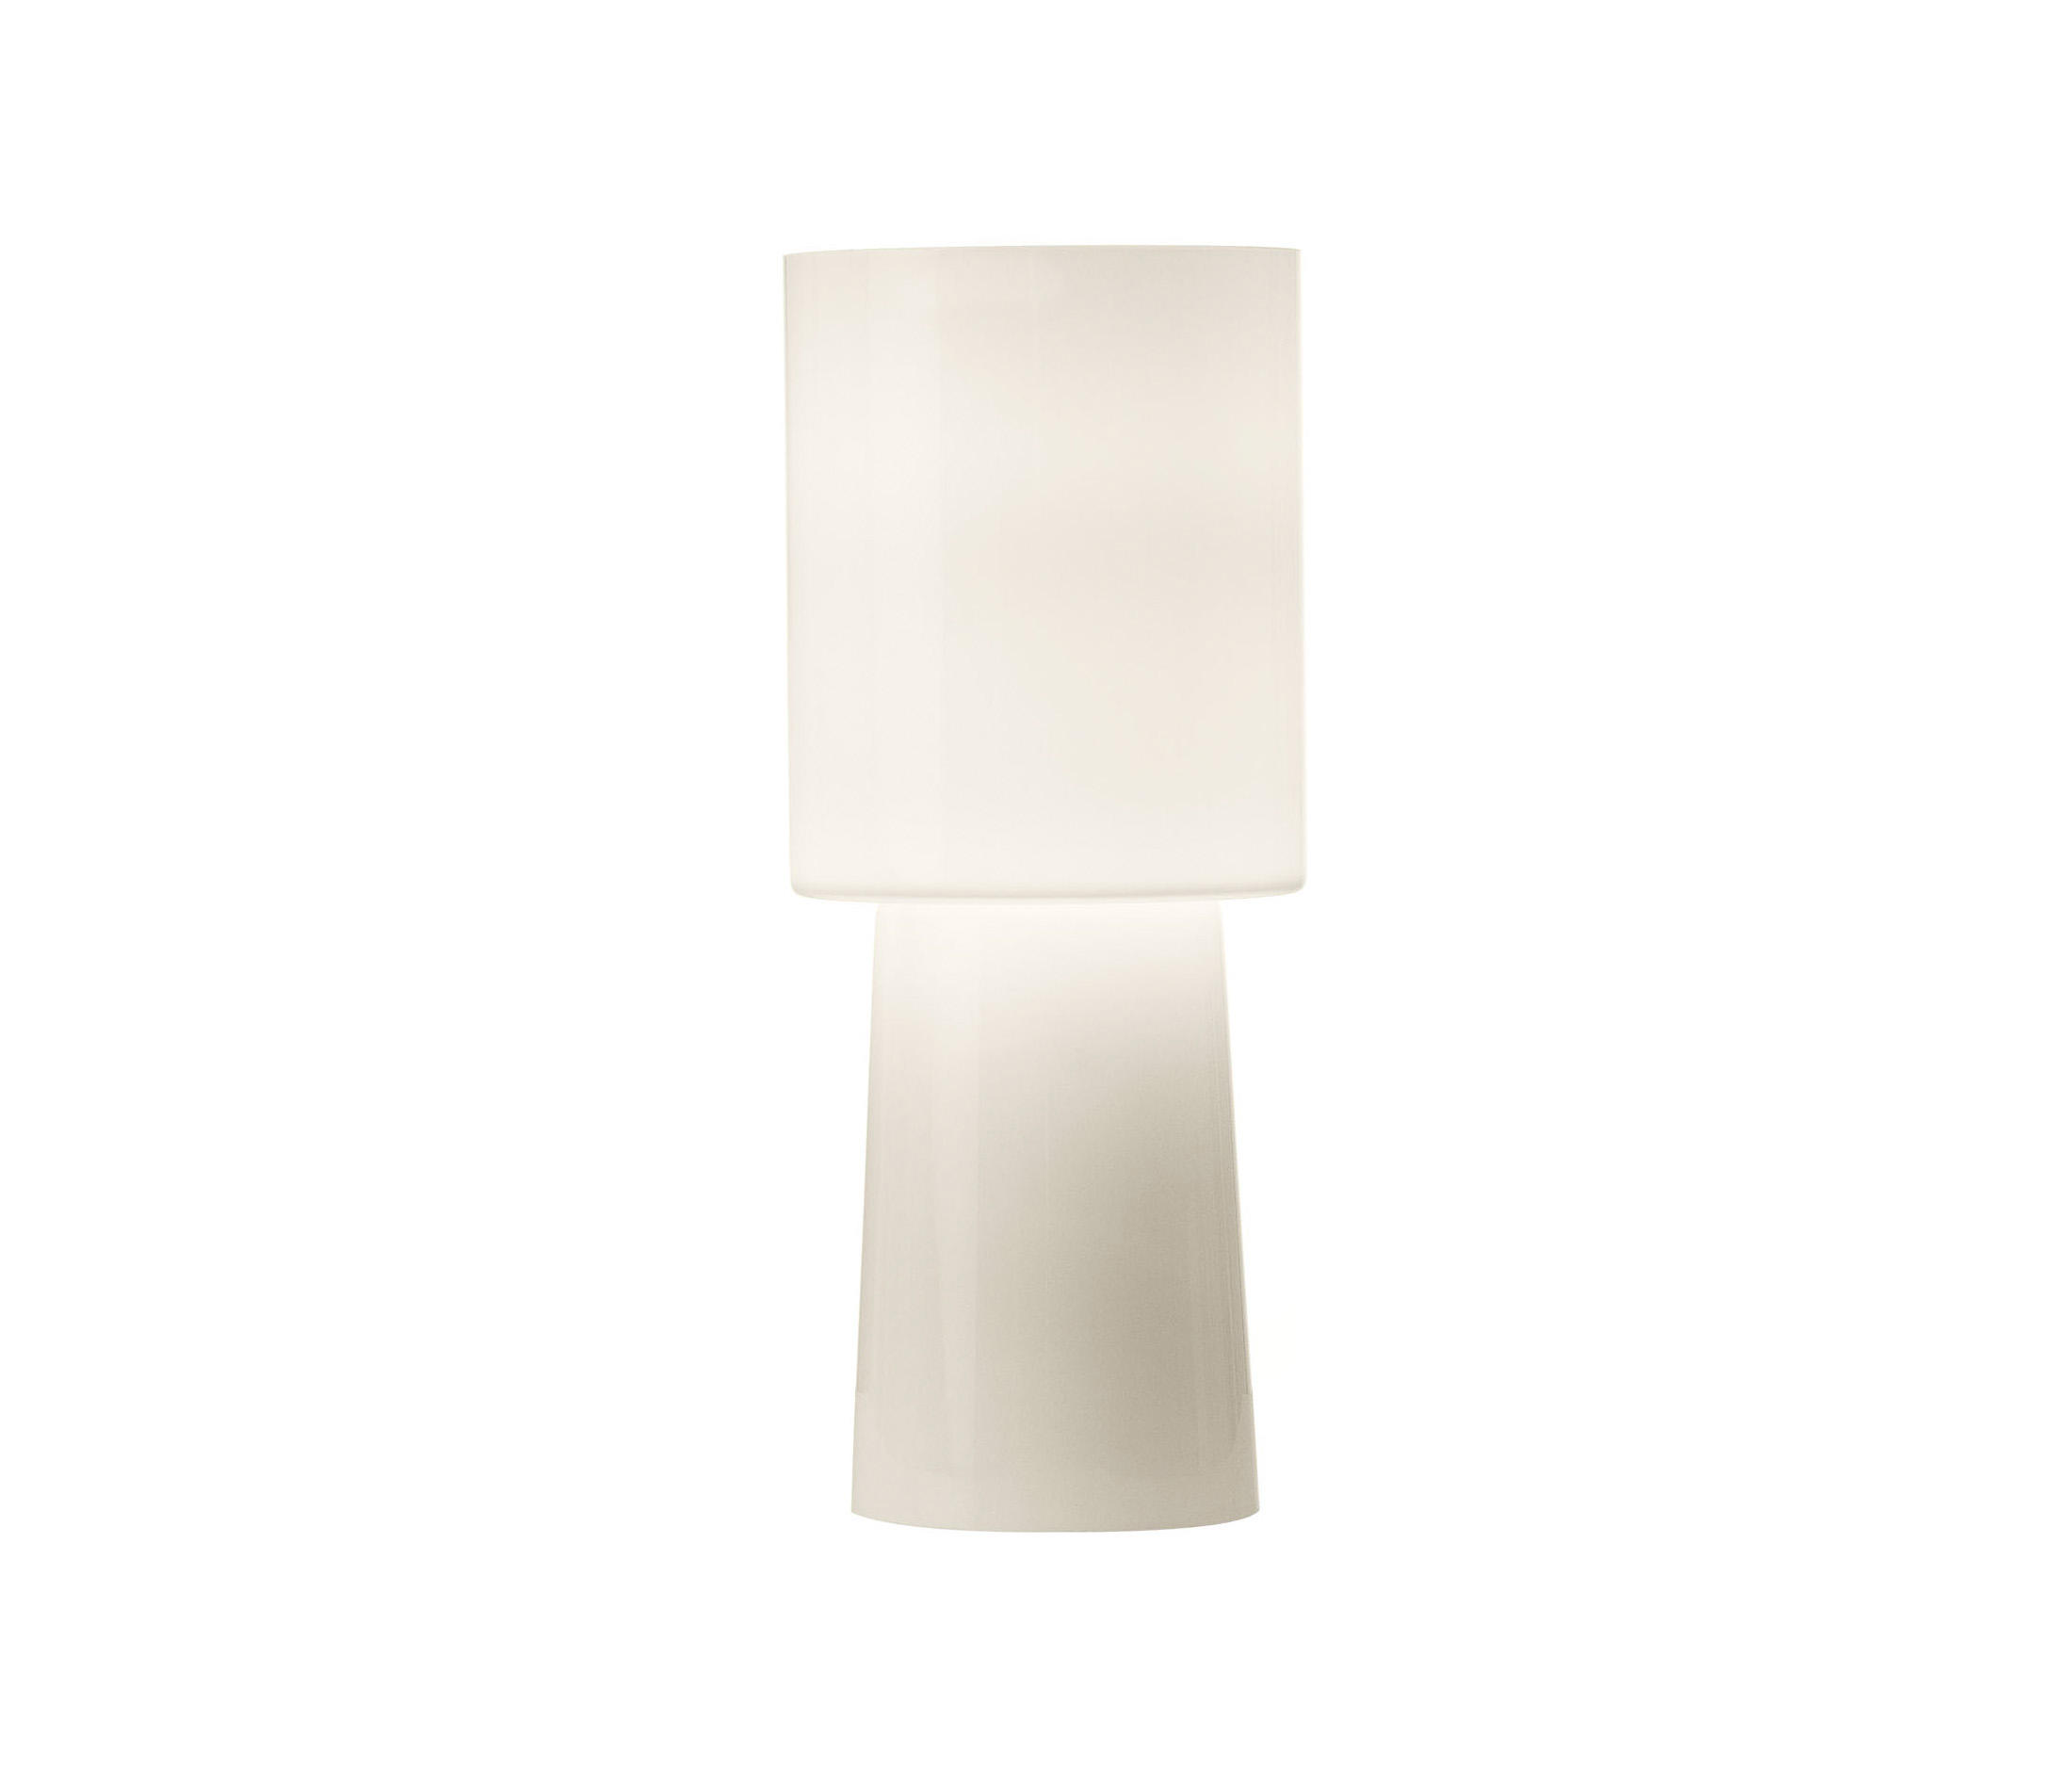 Delightful ... Olle 36 Table Lamp By Bsweden | Table Lamps In Glass